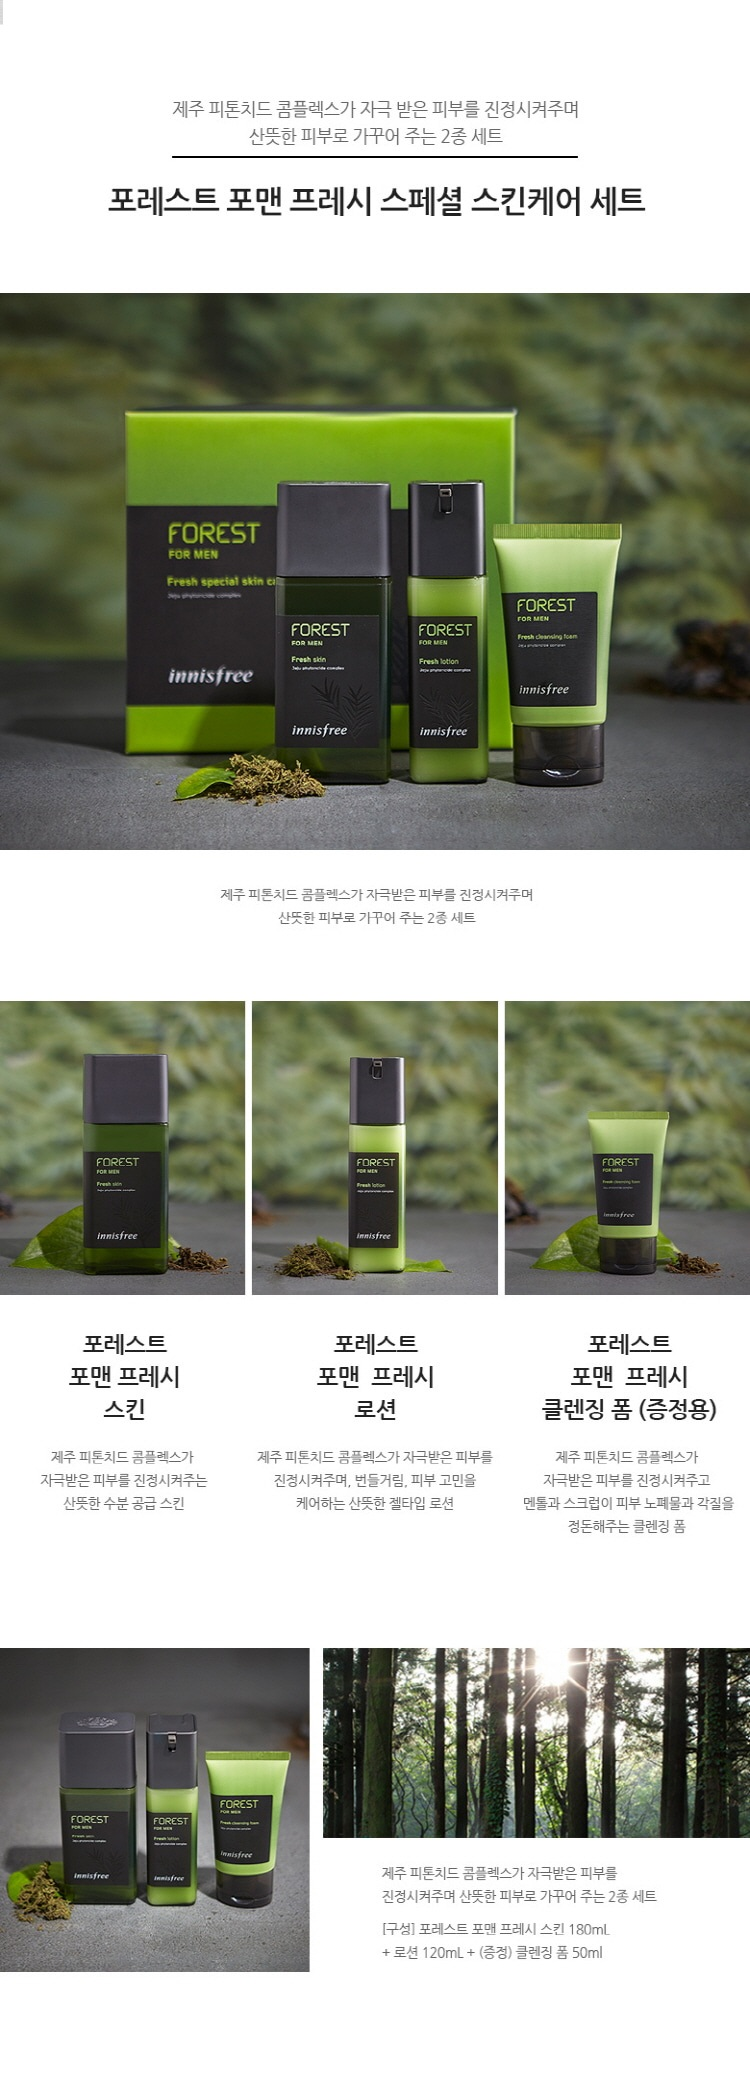 Innisfree Forest For Men Fresh Special Skincare Set korean men skincare product online shop malaysia hong kong china1